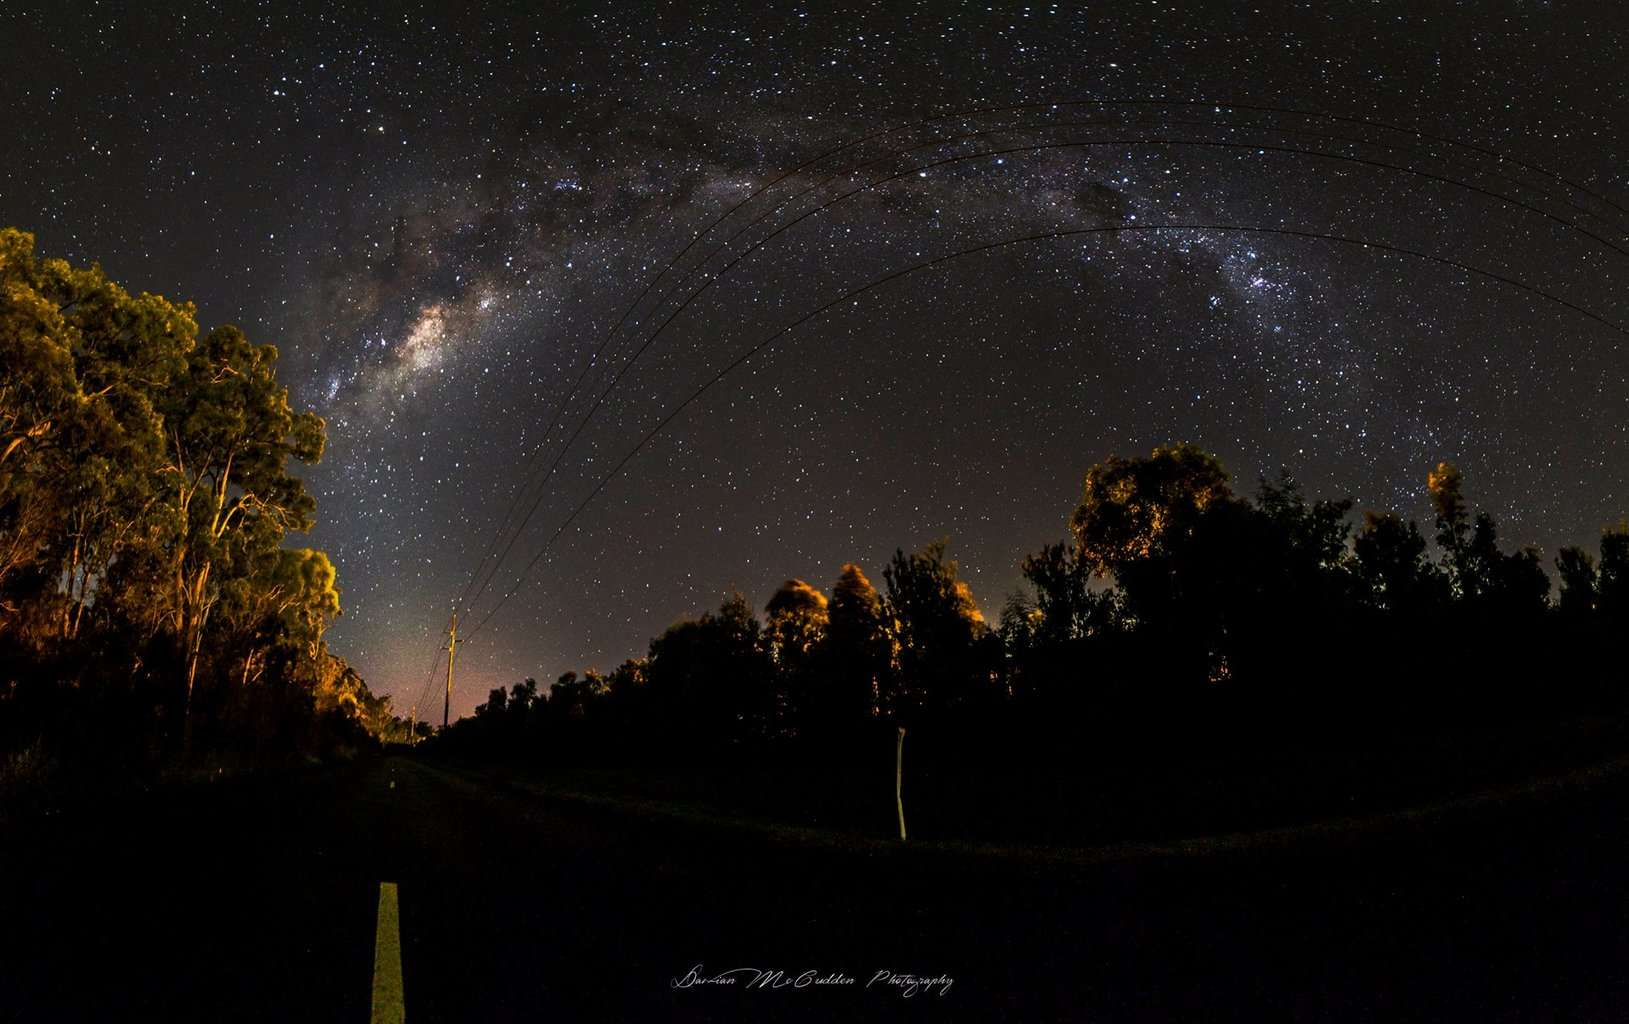 Hey guys, I was out shooting the night sky the other morning and shot this Milky Way pano